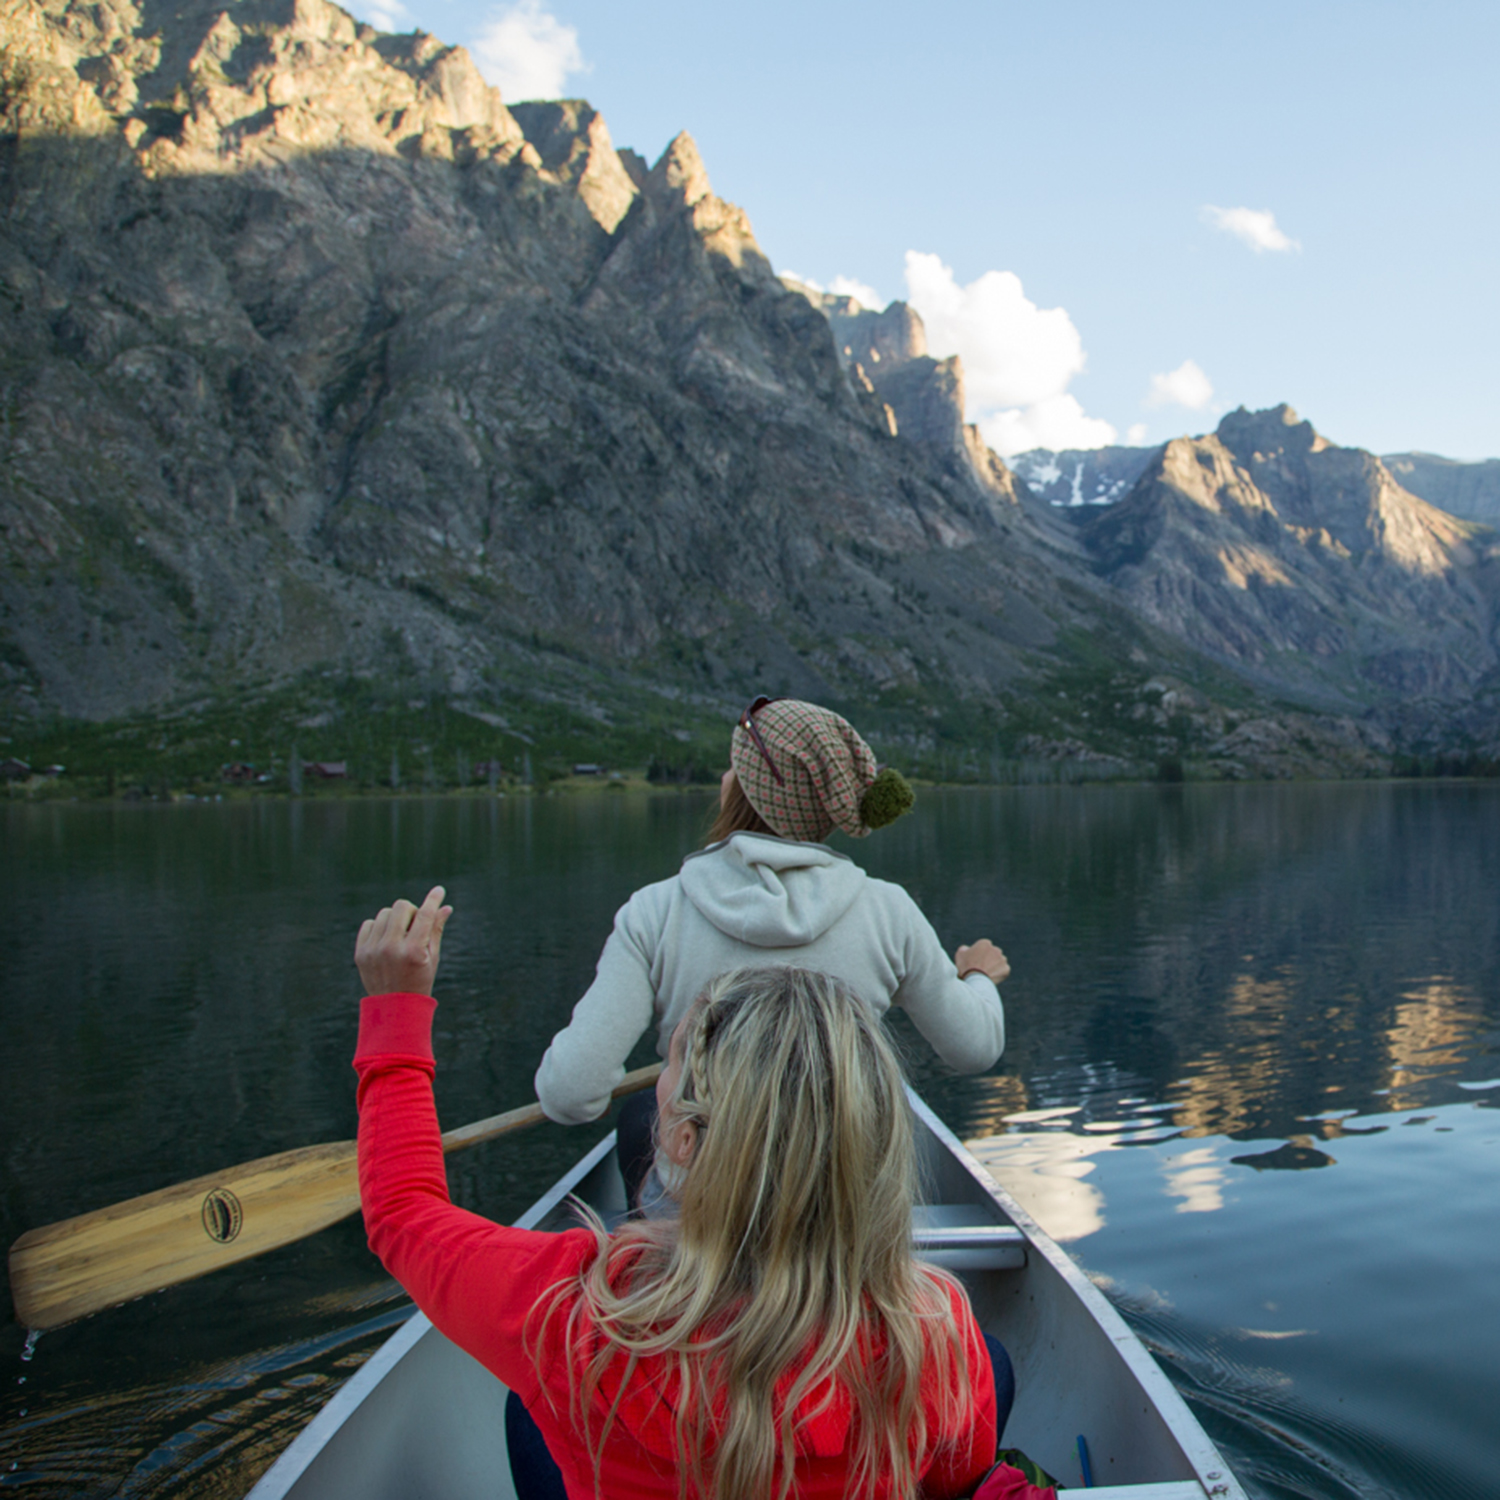 """""""Scoping lines from the canoe with Caroline Gleich & Lydia Tanner. These mountains make you feel small...nothing like water to re-set the mind + a little glass to inspire. I believe it's in these environments that creativity thrives. It's such a treat to share with others and watch their eyes glow, a flame, a spark, which nature provides. Food for the soul."""""""